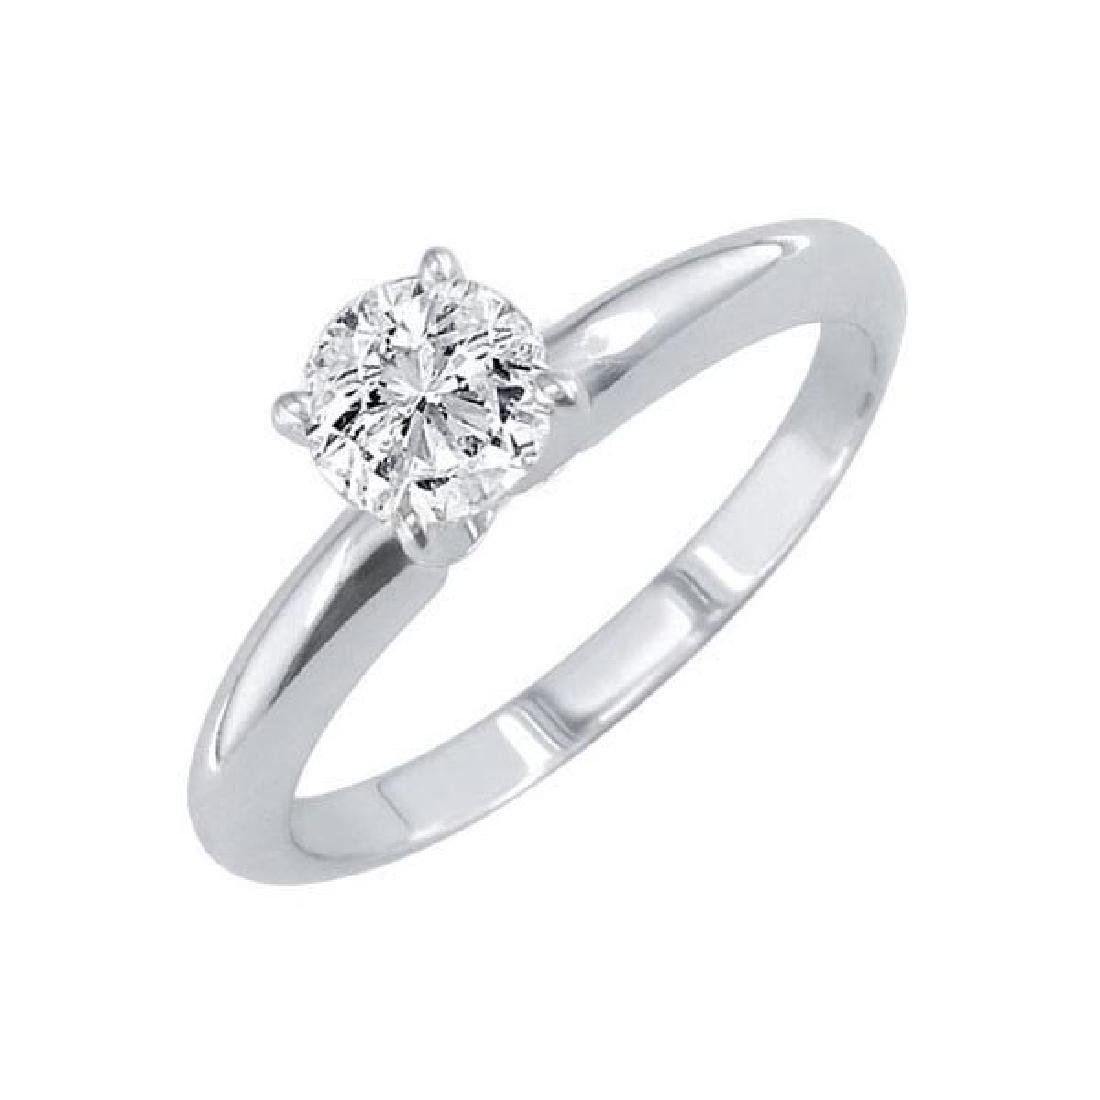 Certified 0.78 CTW Round Diamond Solitaire 14k Ring F/I